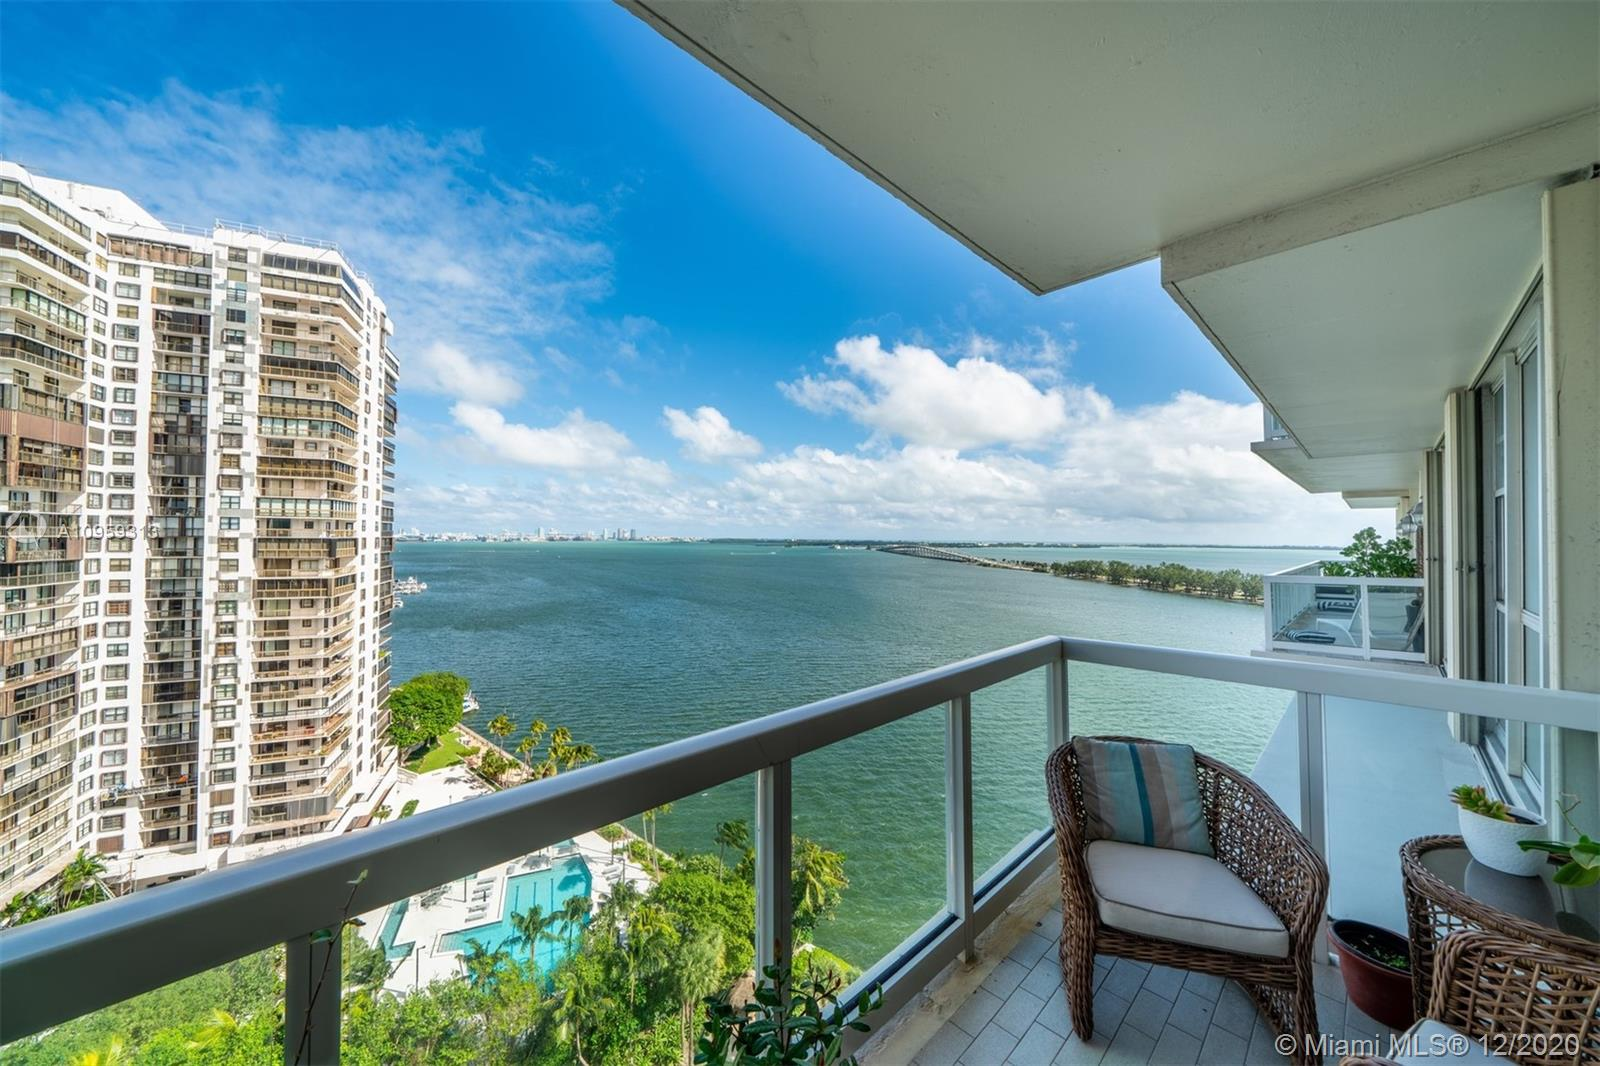 Brickell Townhouse #17E - 2451 Brickell Ave #17E, Miami, FL 33129